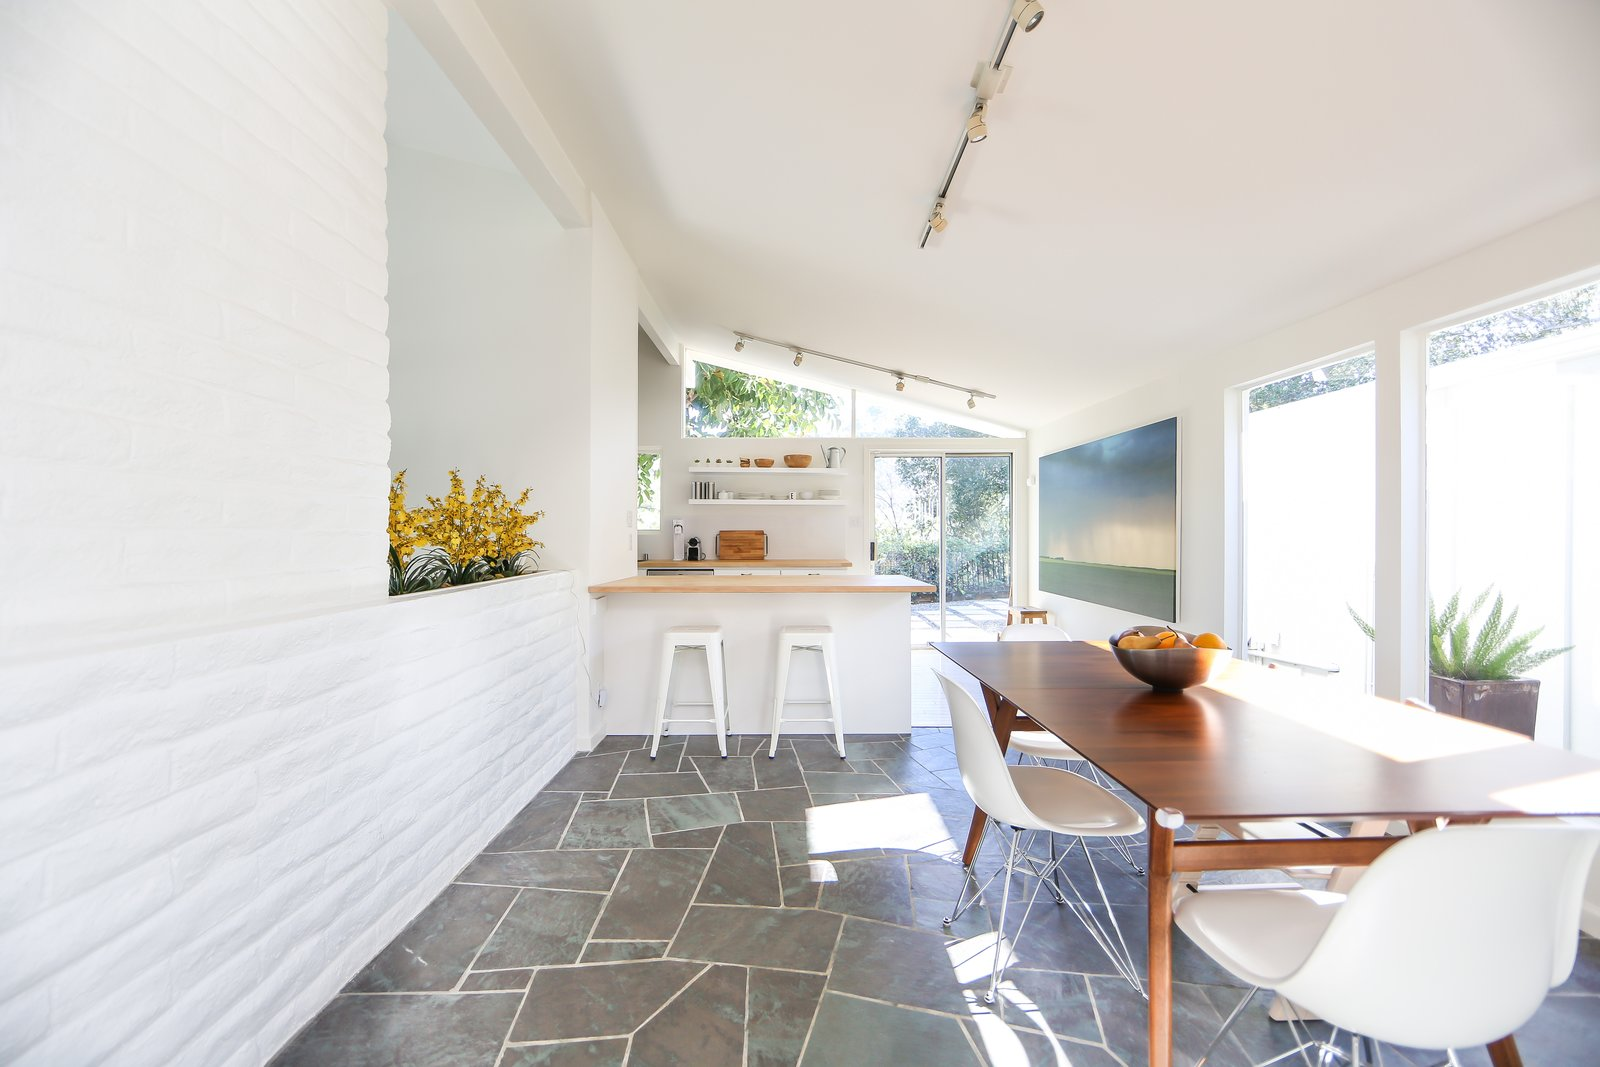 Though the main bones have been kept intact, one of the past owners installed slate flooring in the entryway, hallway, and dining area (shown here), which leads into the lengthy kitchen. If You Crave Bright, Light-Filled Spaces, This Midcentury Home For Sale Could Be the One - Photo 4 of 10